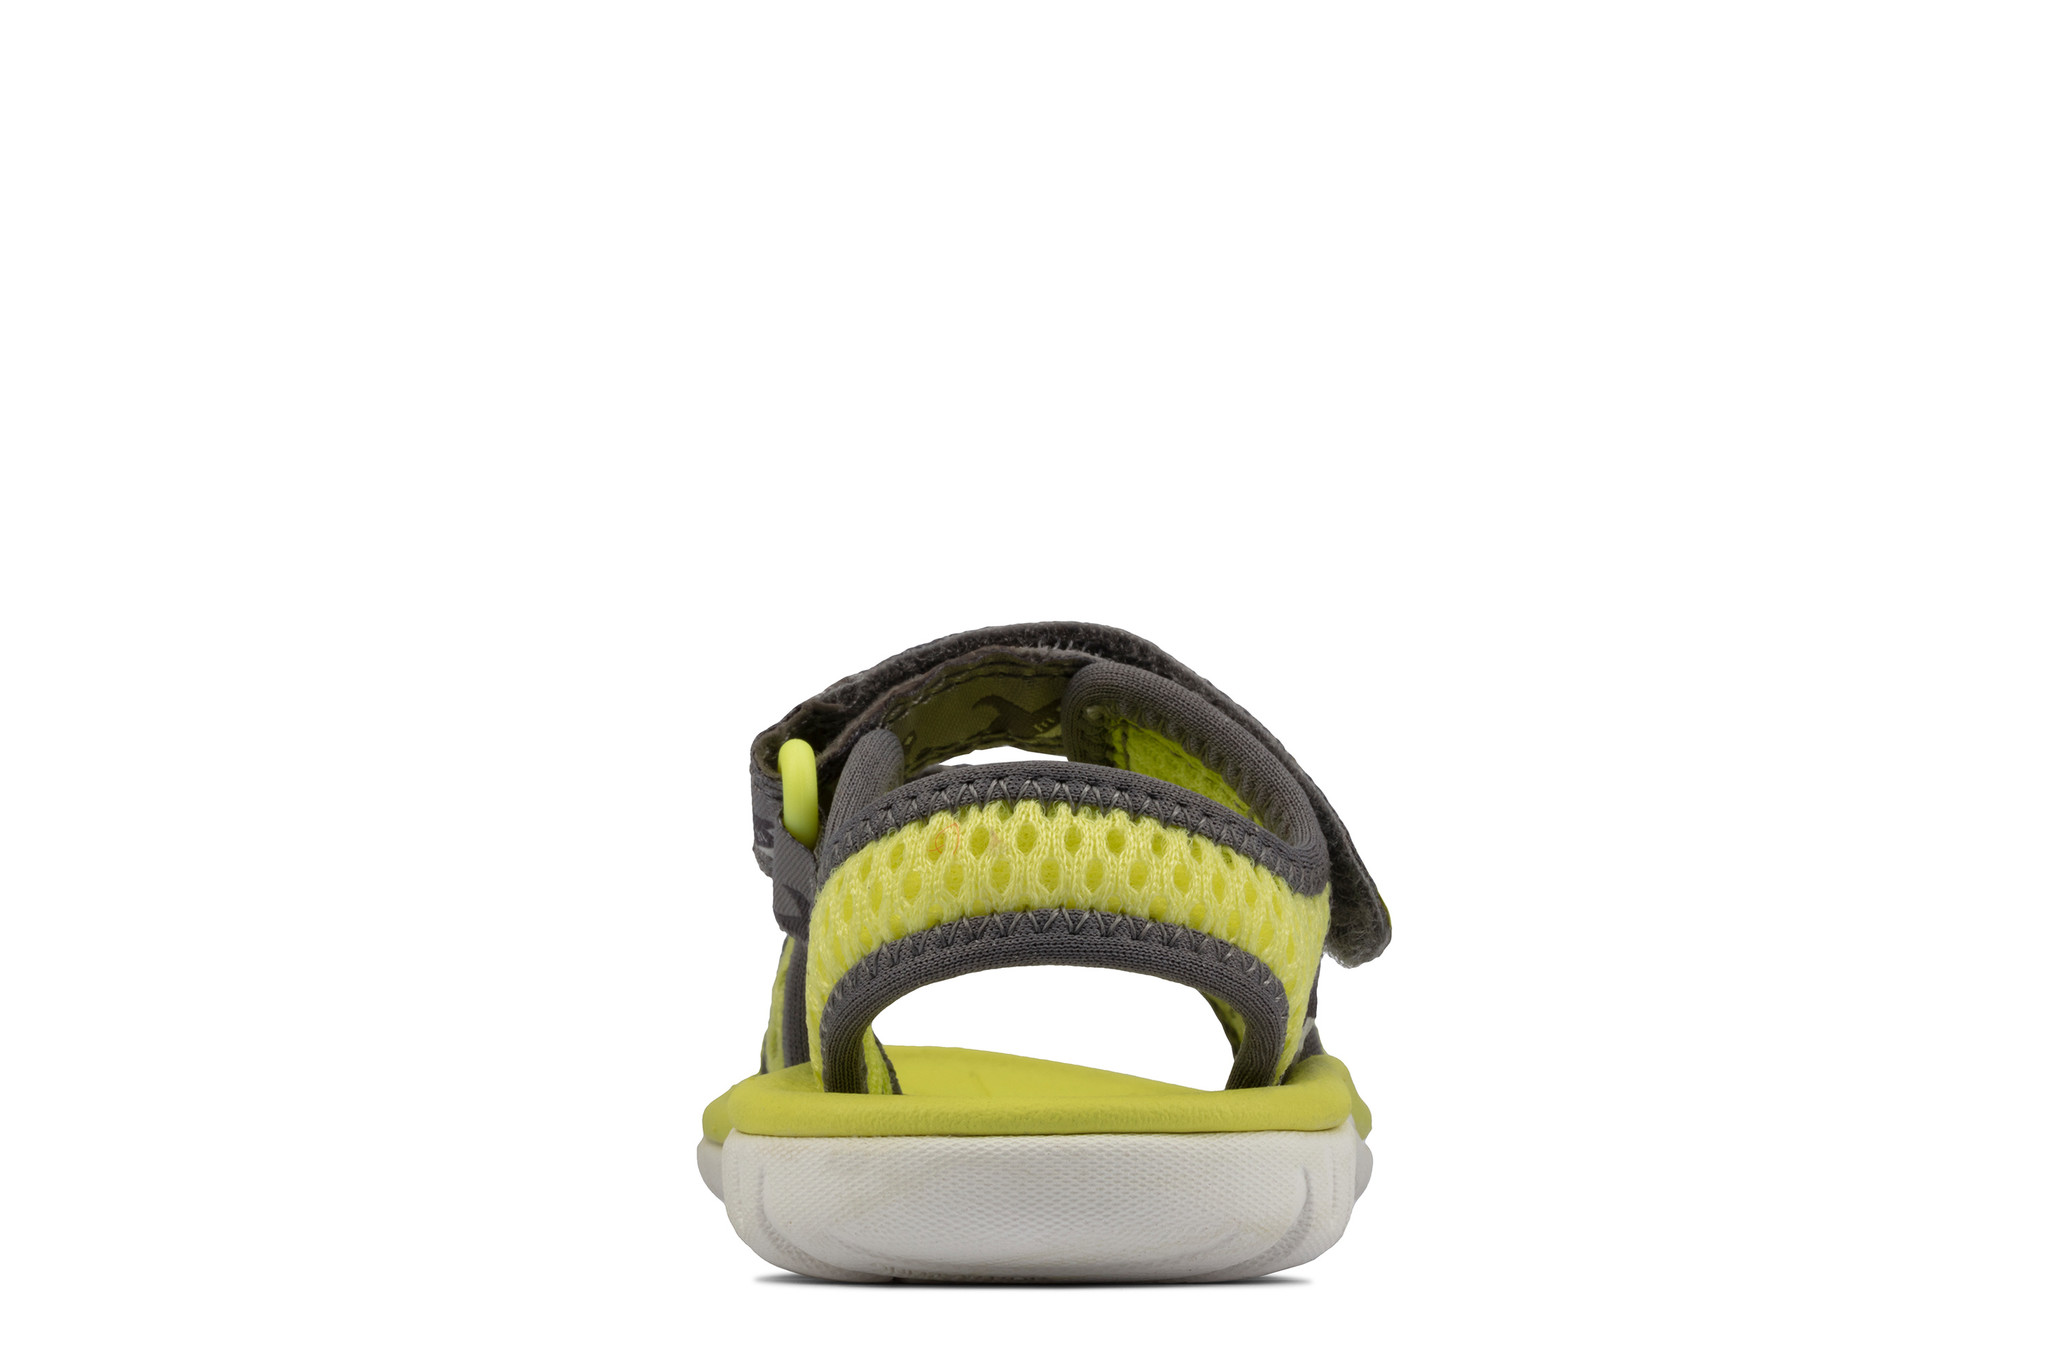 Clarks Surfing Tide Yellow Infant